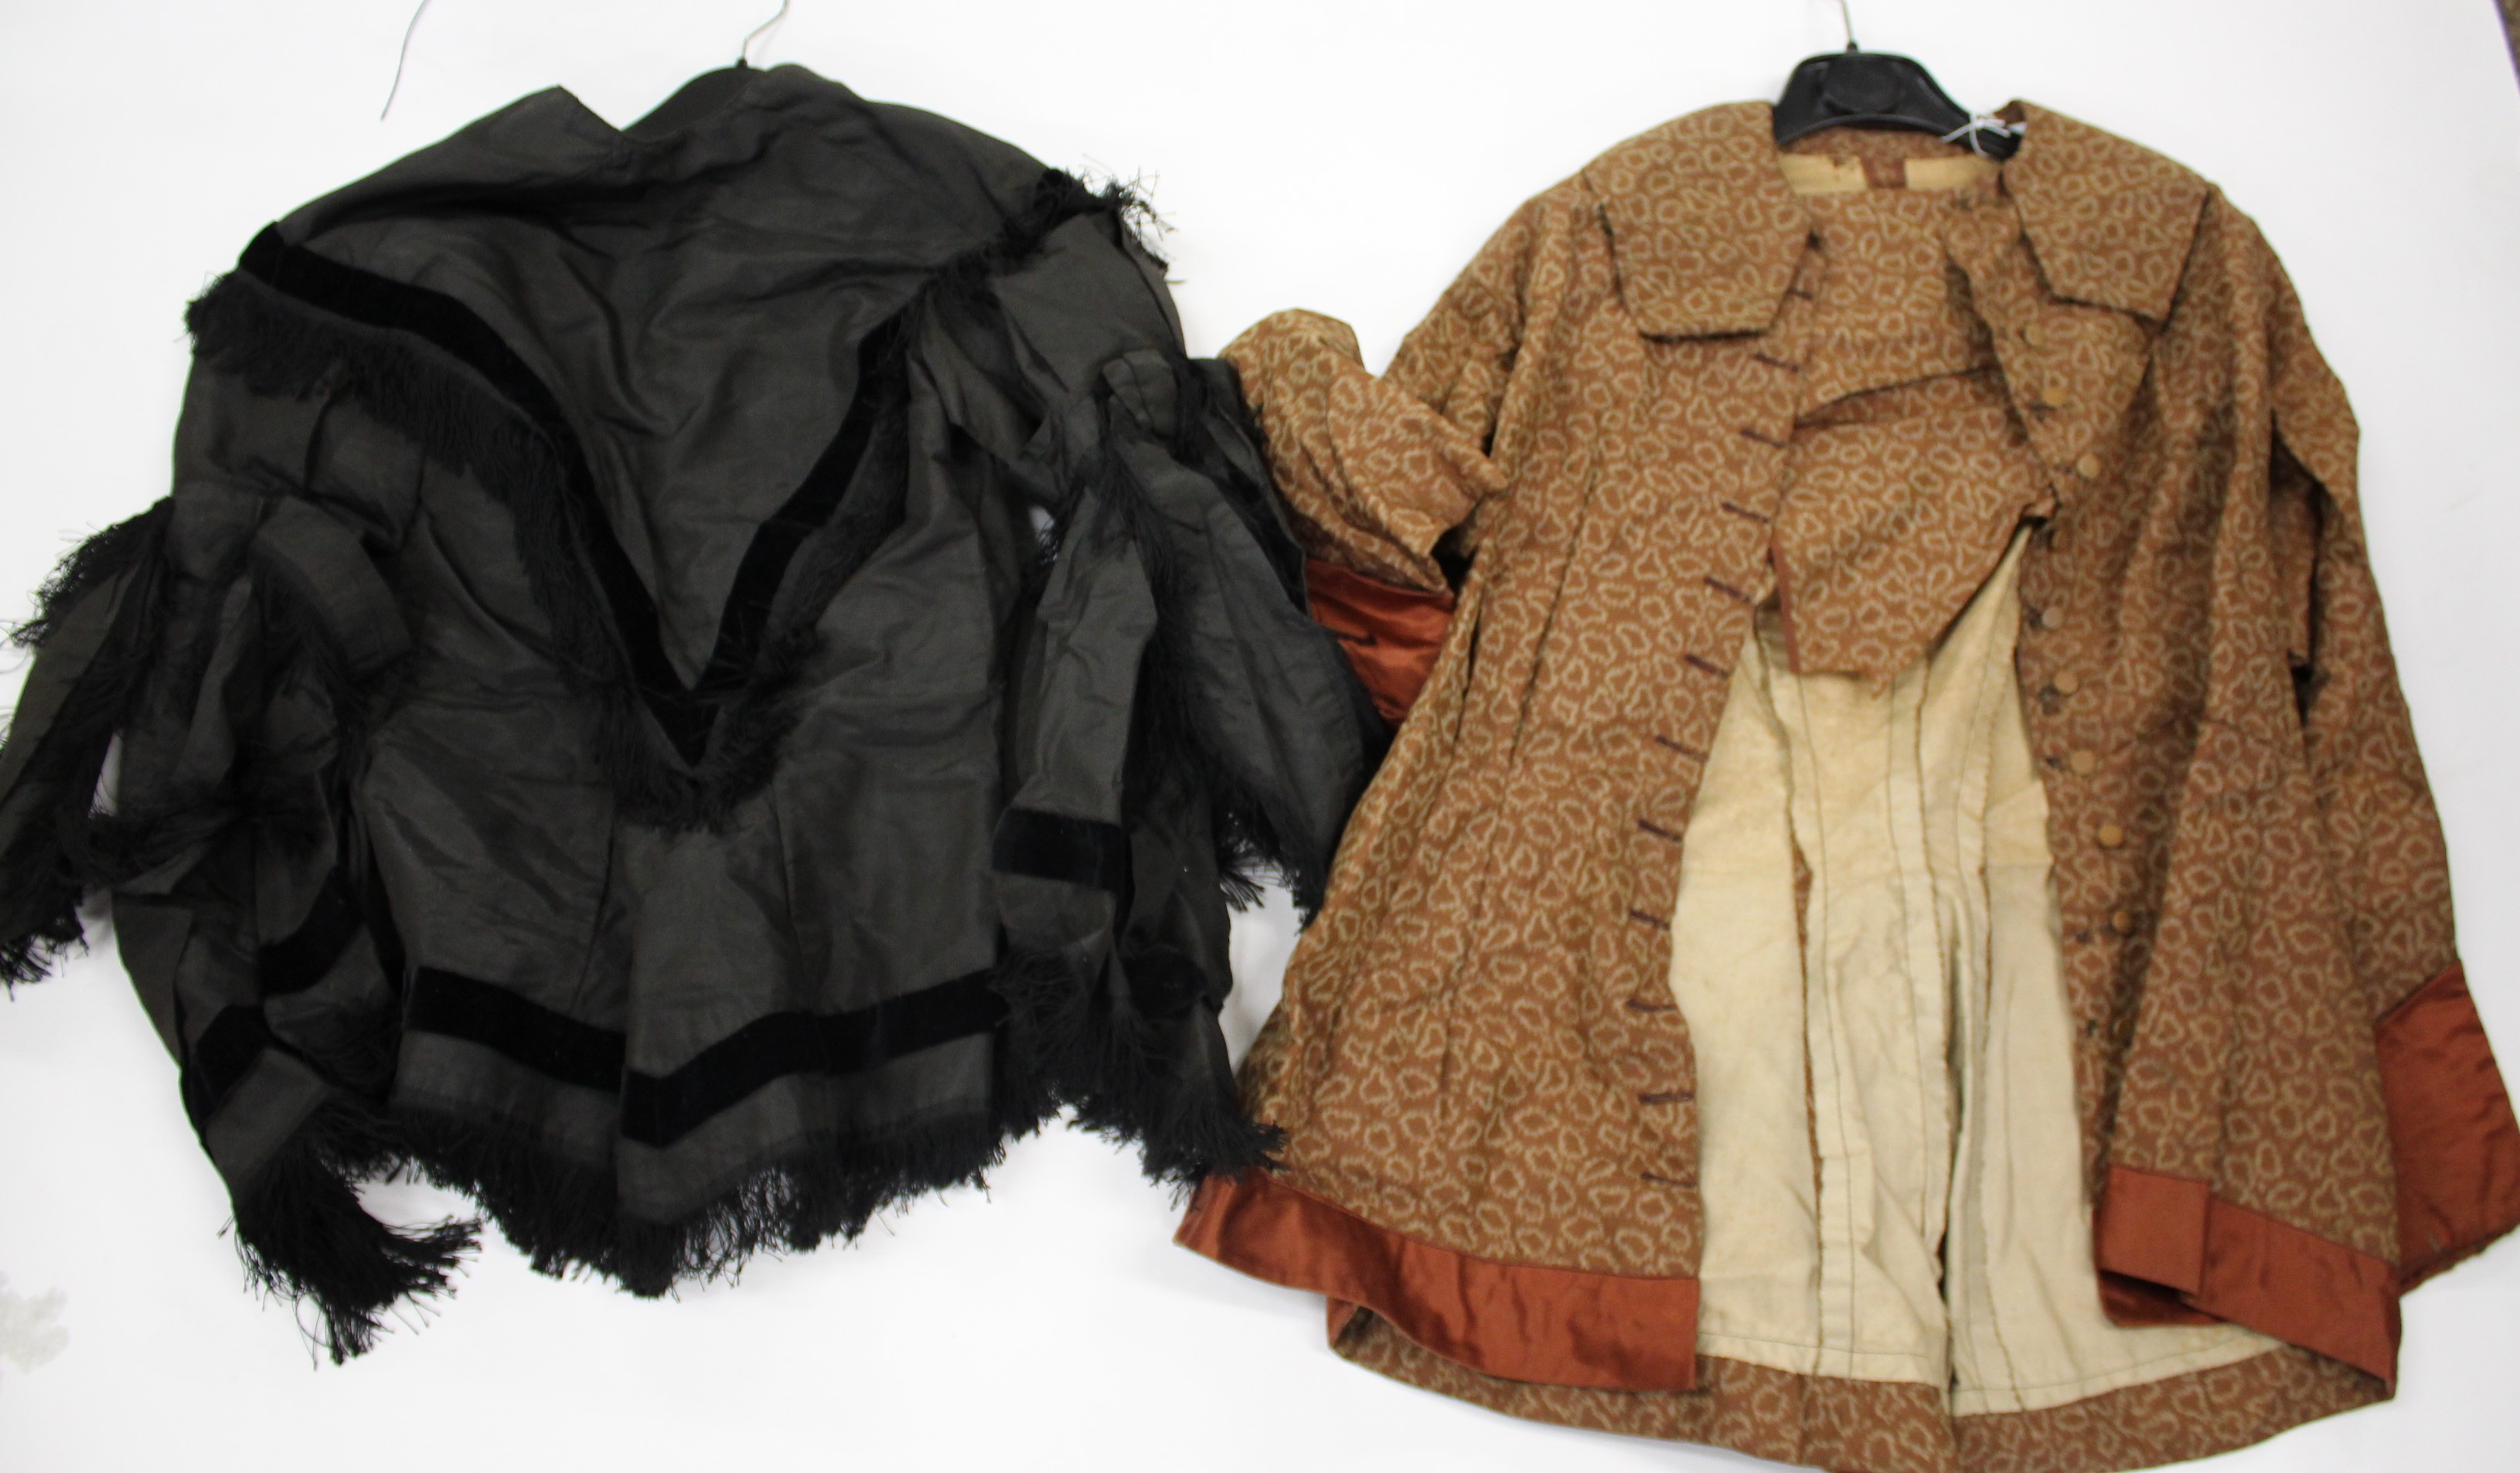 Lot 1893 - 19THC CLOTHING & OTHER ITEMS including a 19thc black silk blouse, a 19thc brown patterned silk